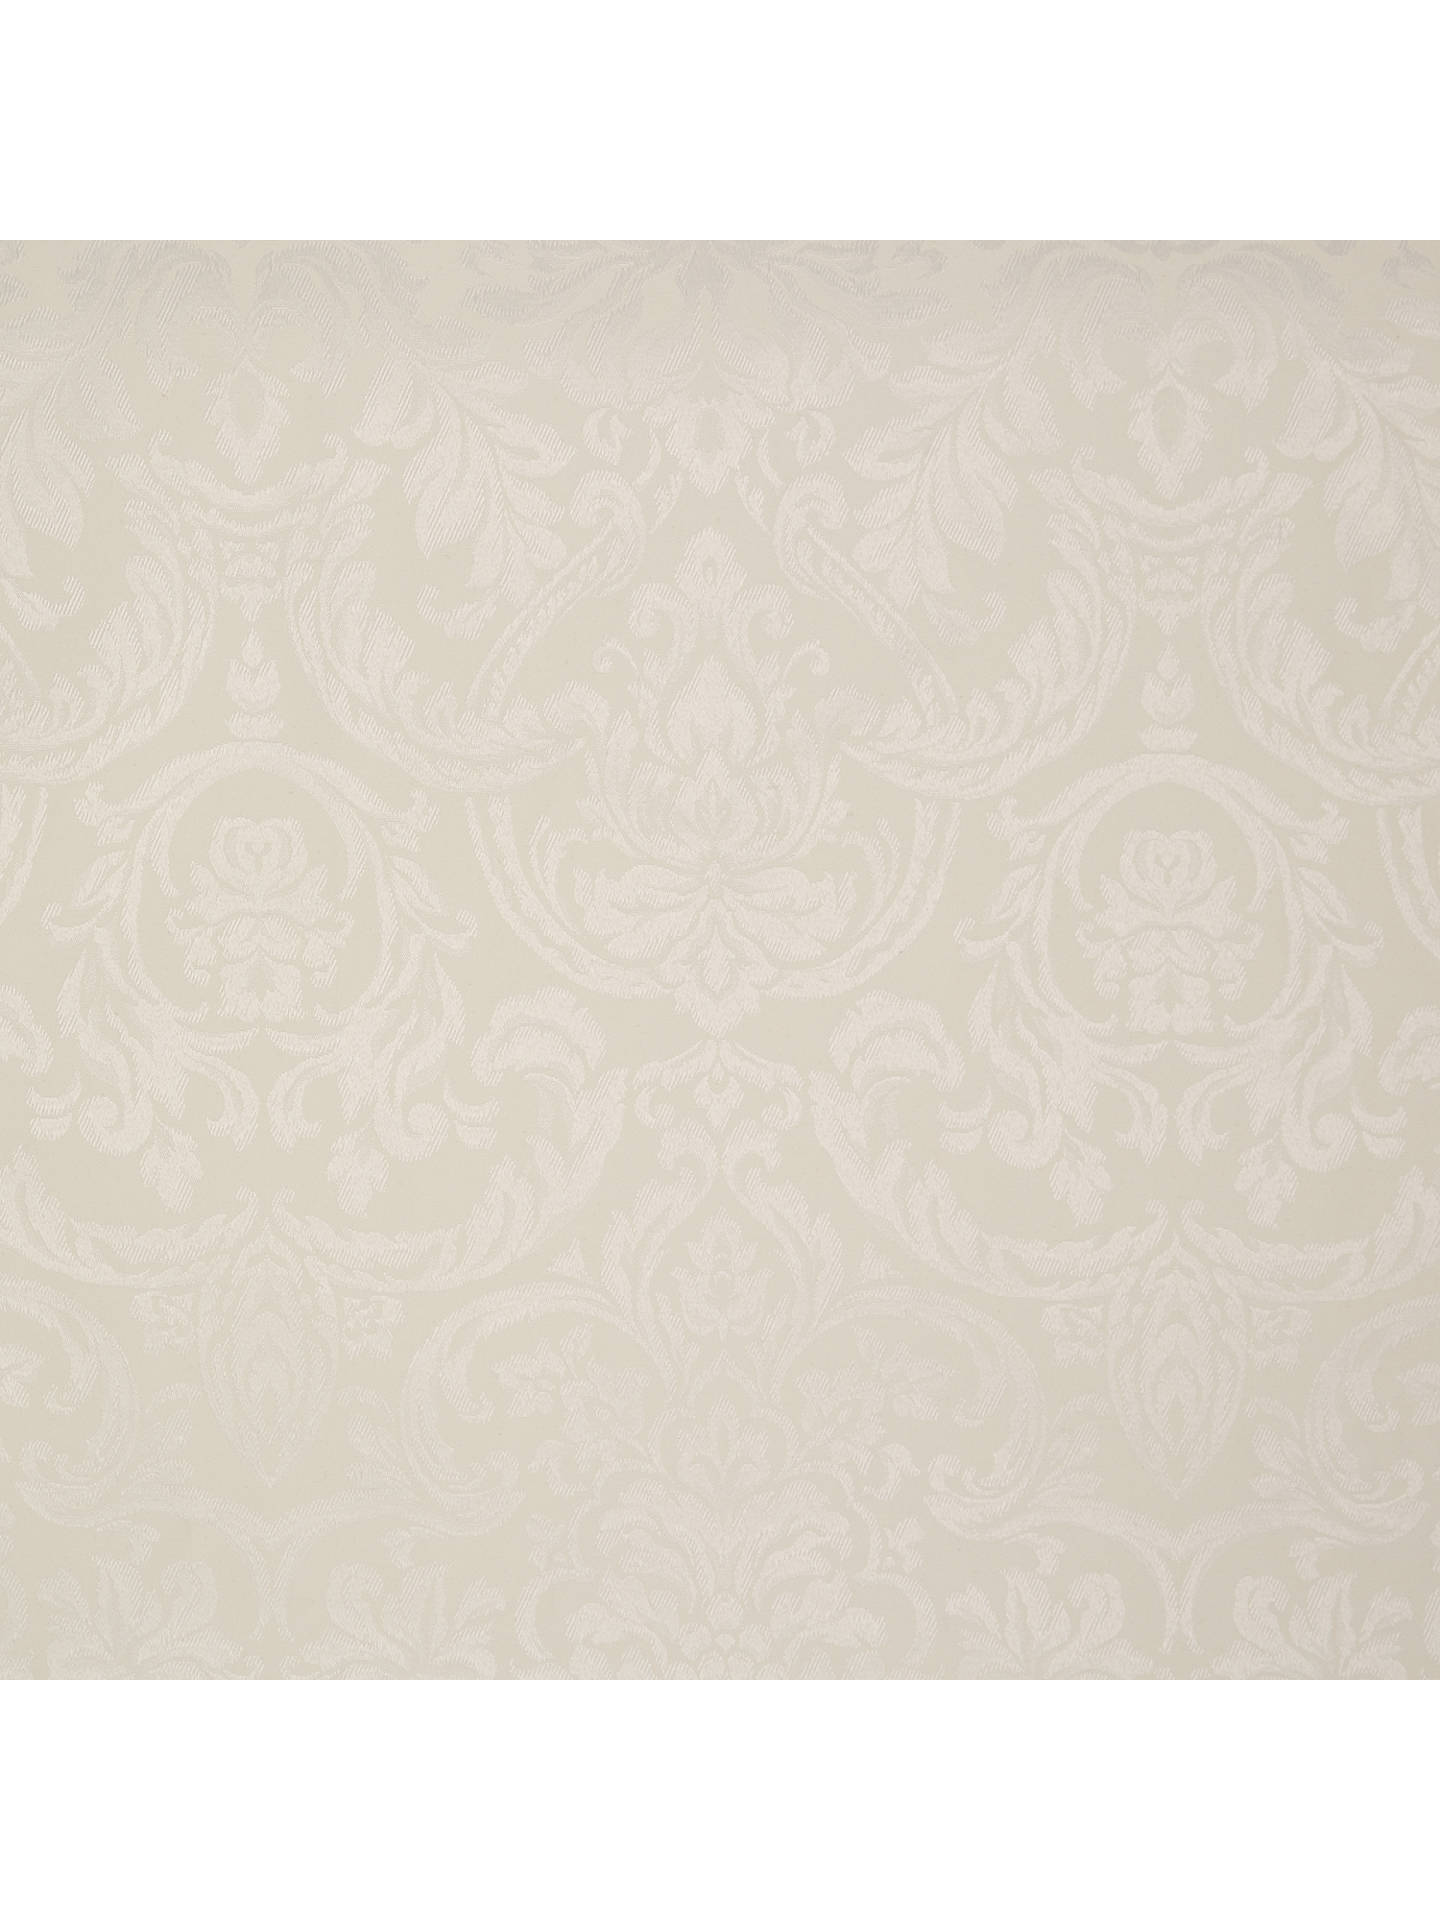 BuyJohn Lewis & Partners Damask Weave Acrylic Coated Tablecloth Fabric, Oyster Online at johnlewis.com